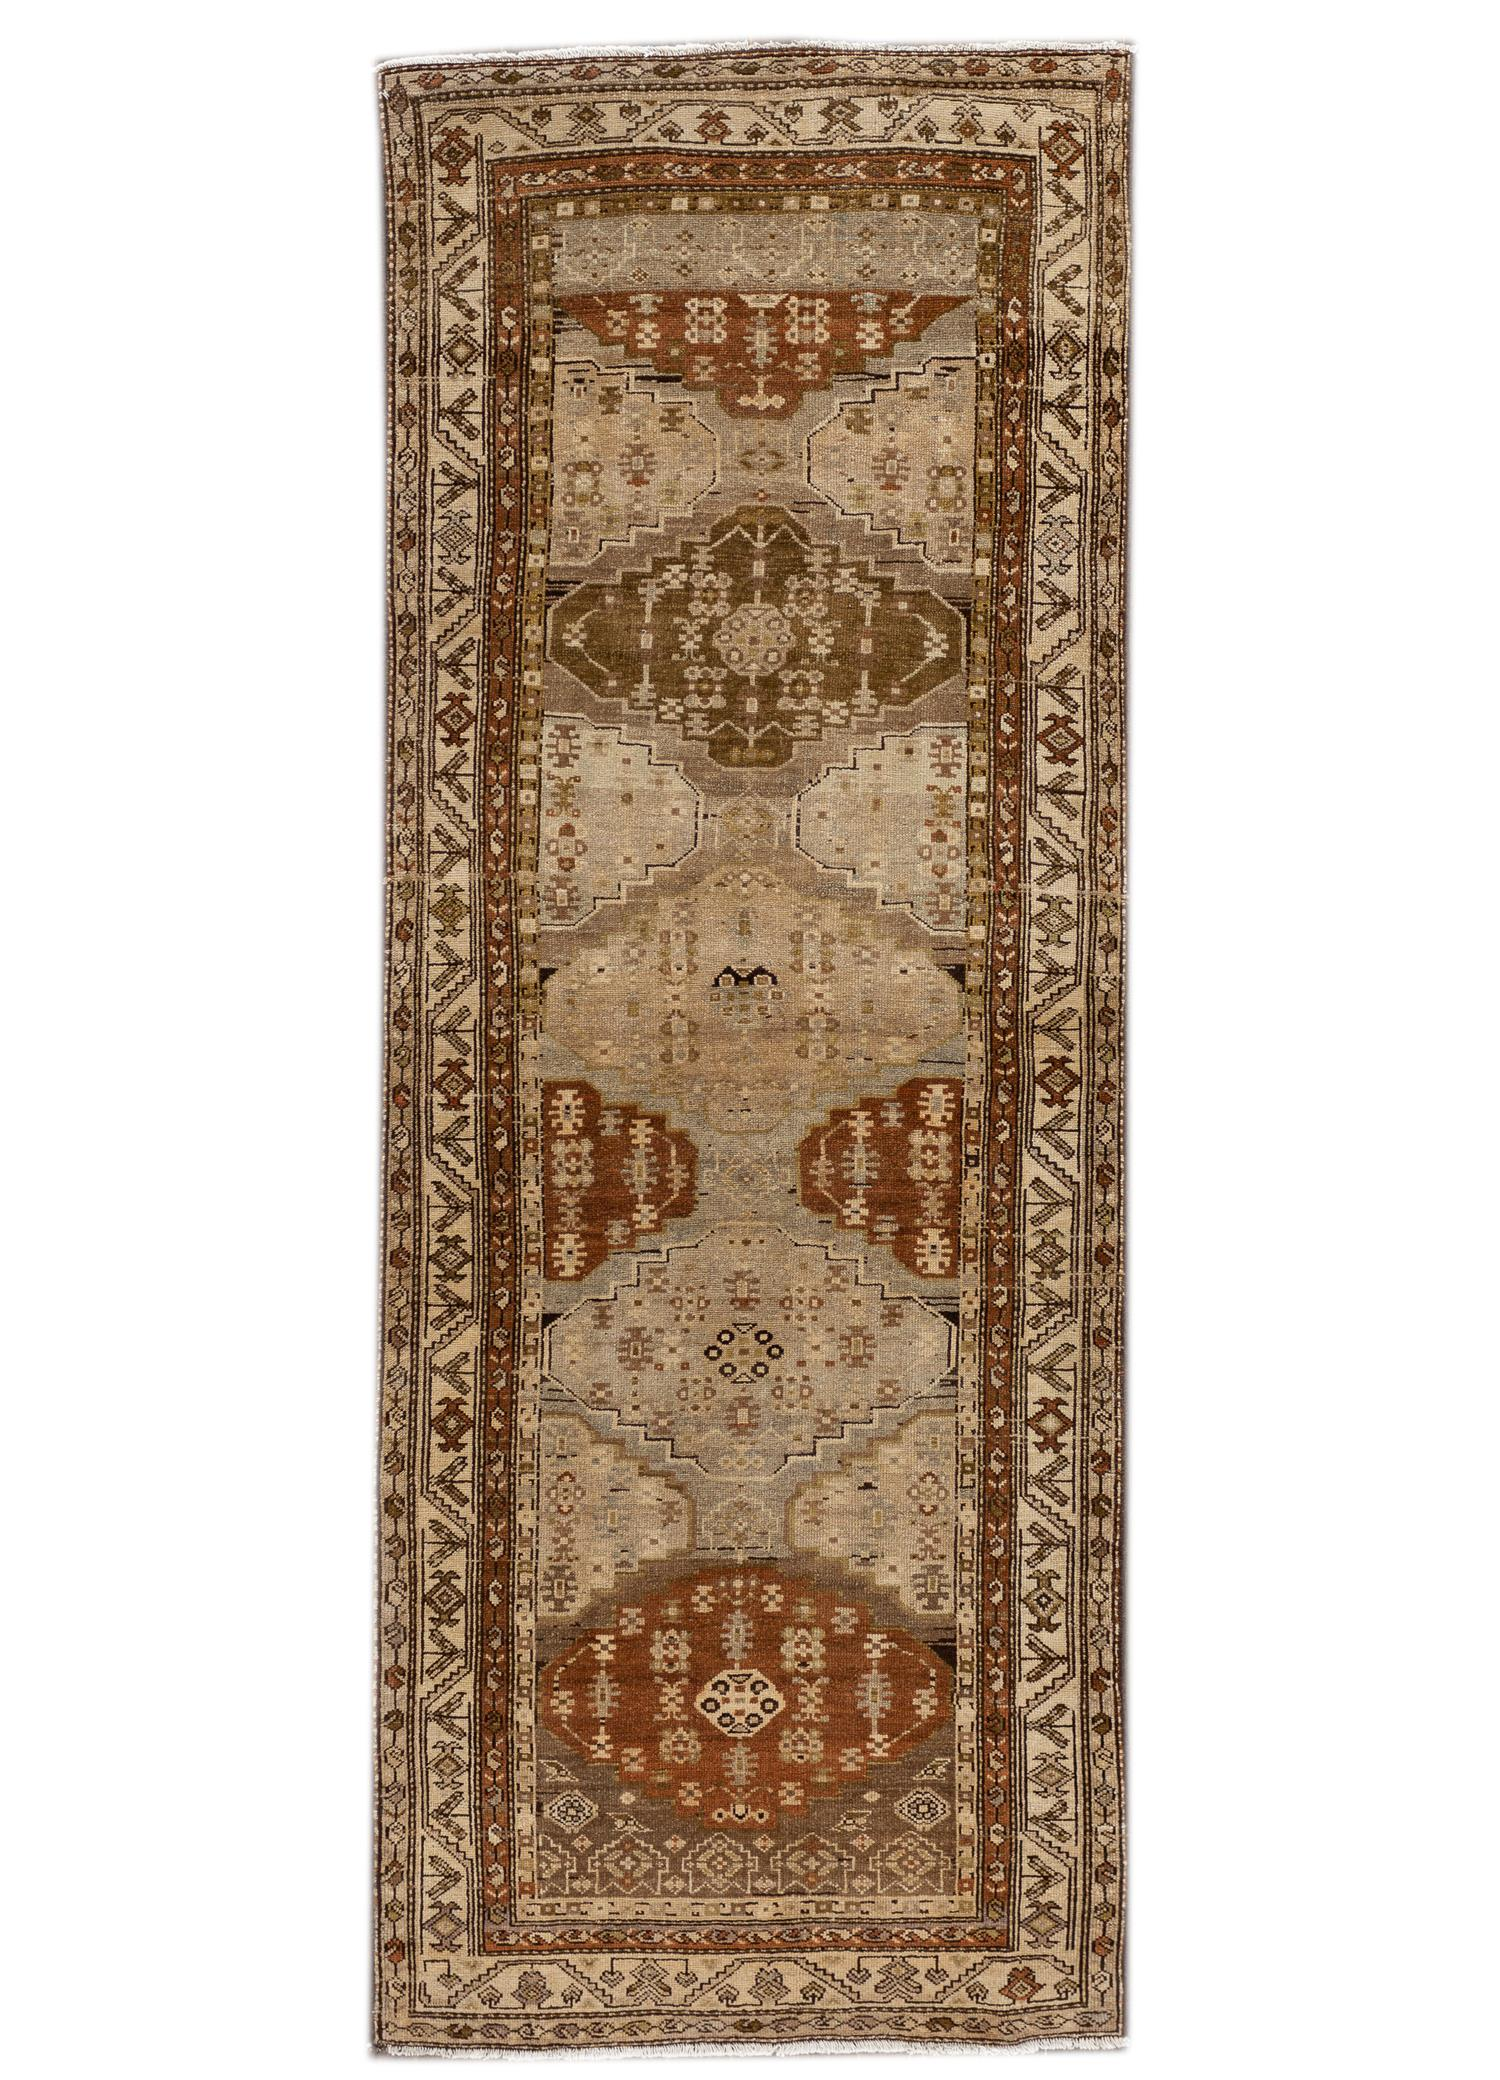 Antique Malayer Runner, #10235265, 3' x 9'